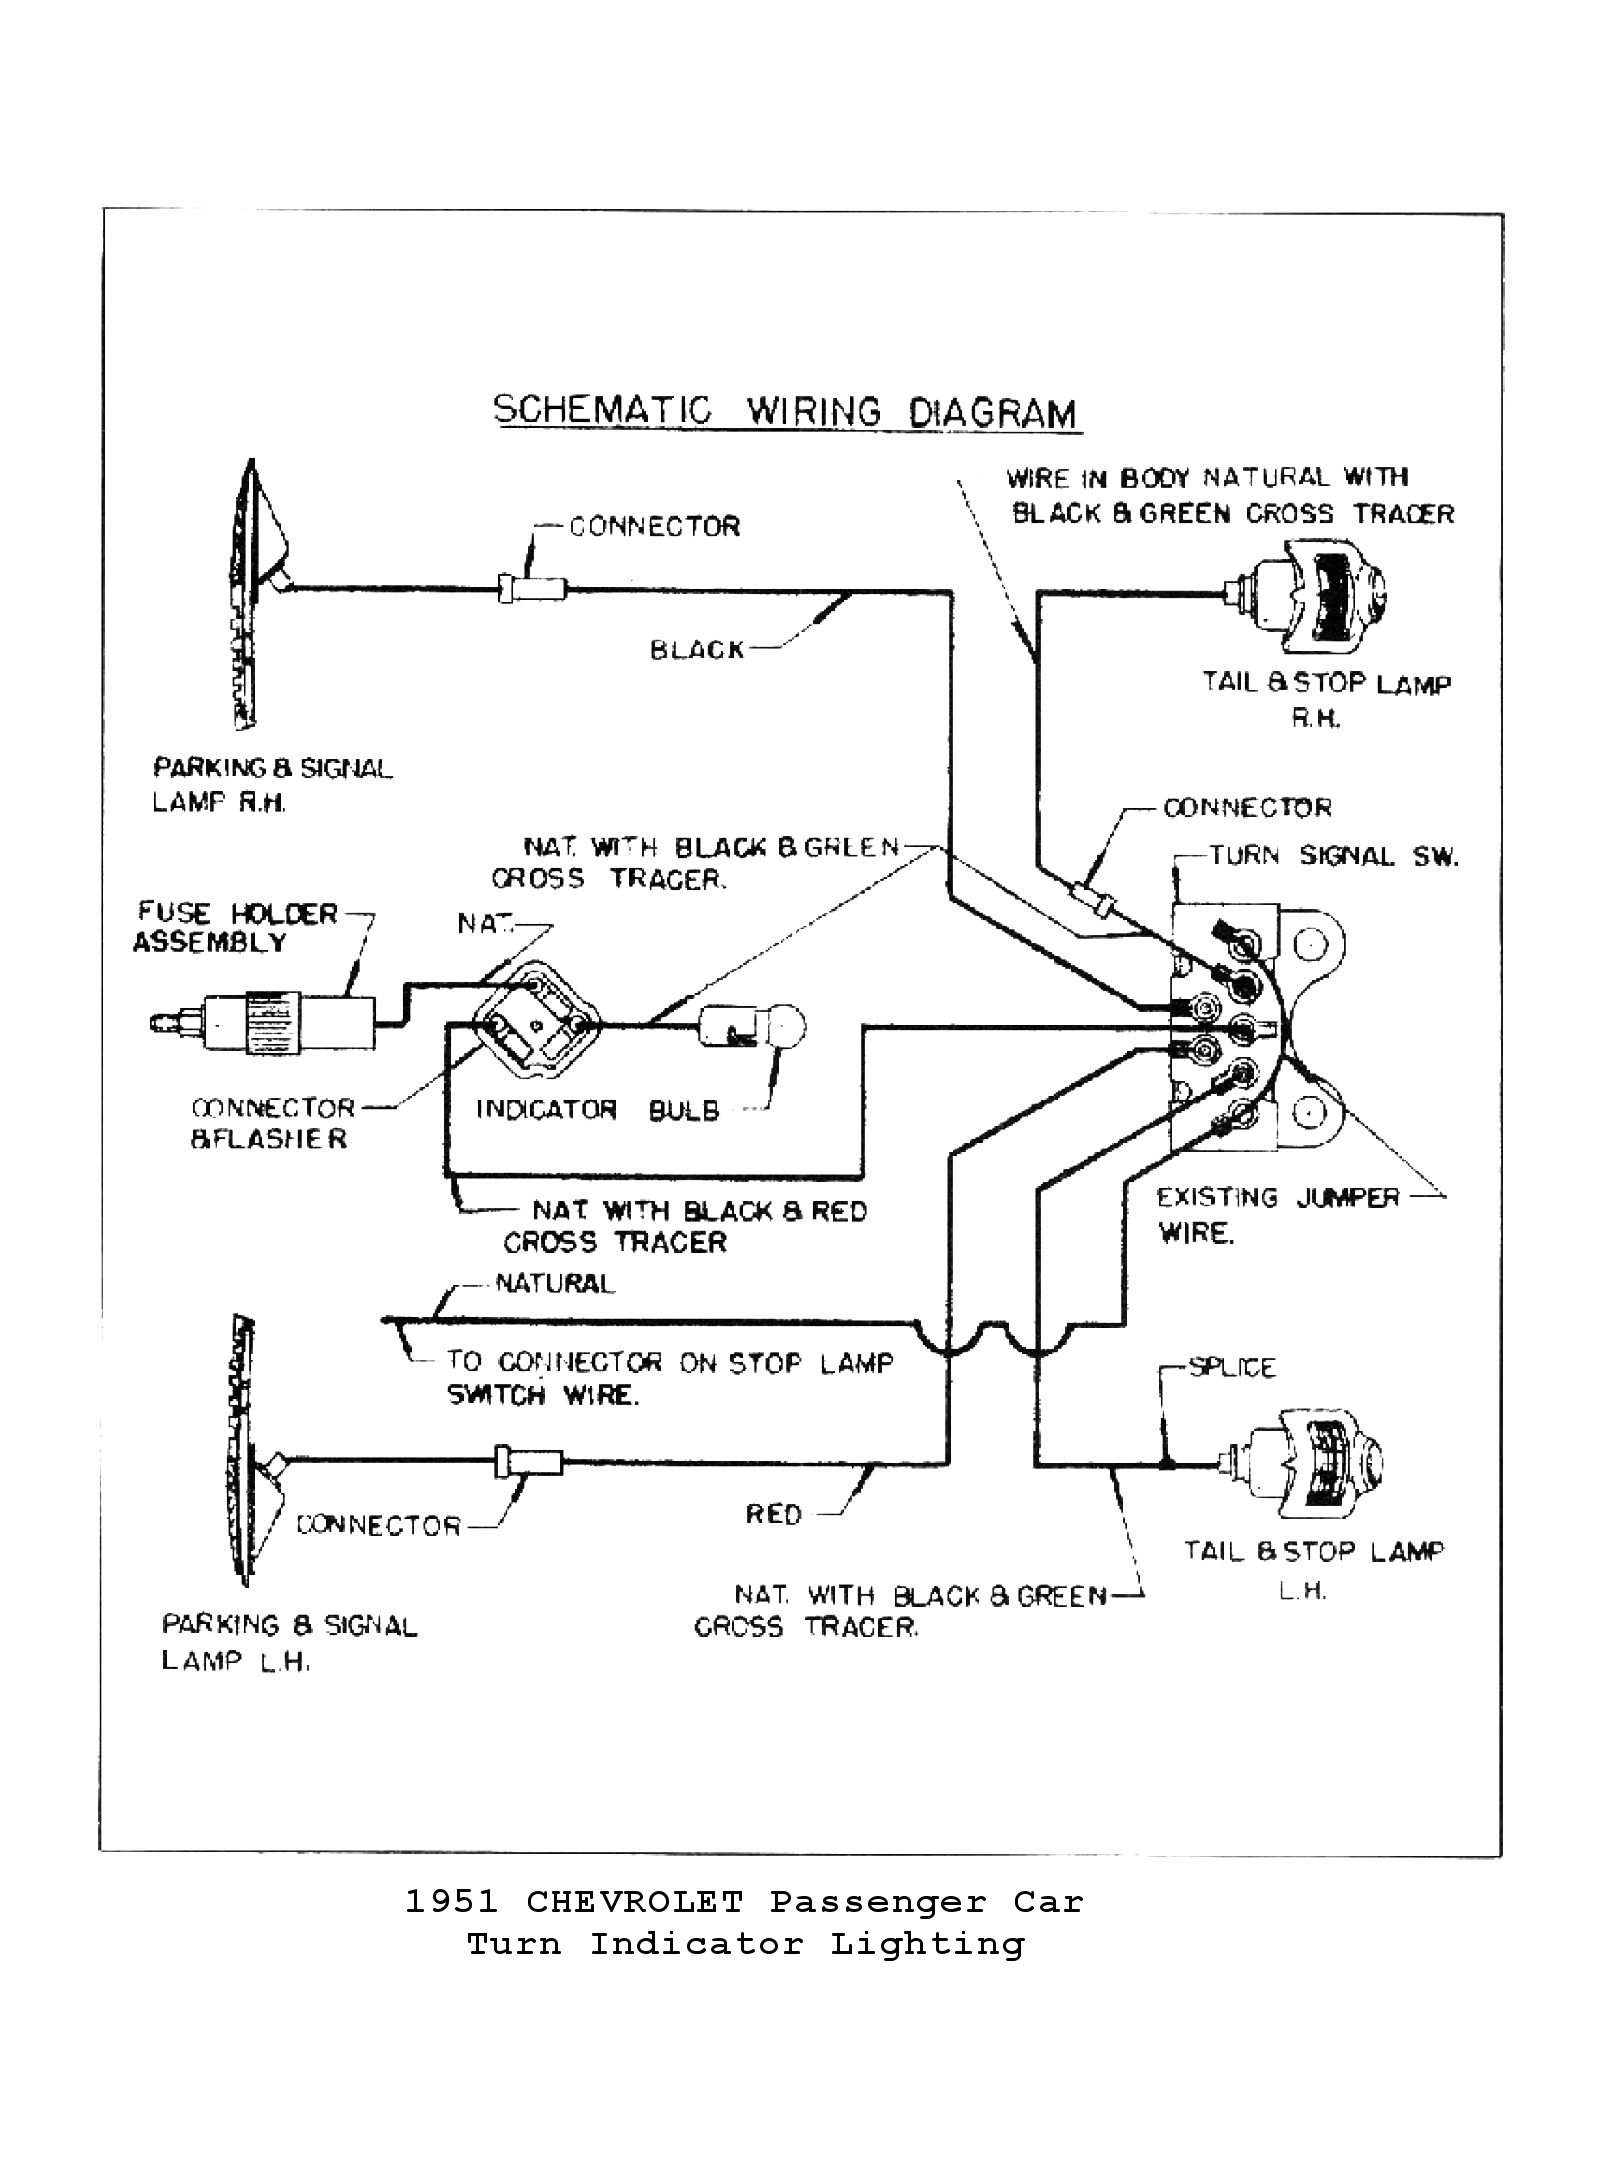 5152turnsignals 55 chevy heater diagram wiring schematic wiring diagram simonand 66 Chevy Headlight Switch Wiring Diagram at aneh.co